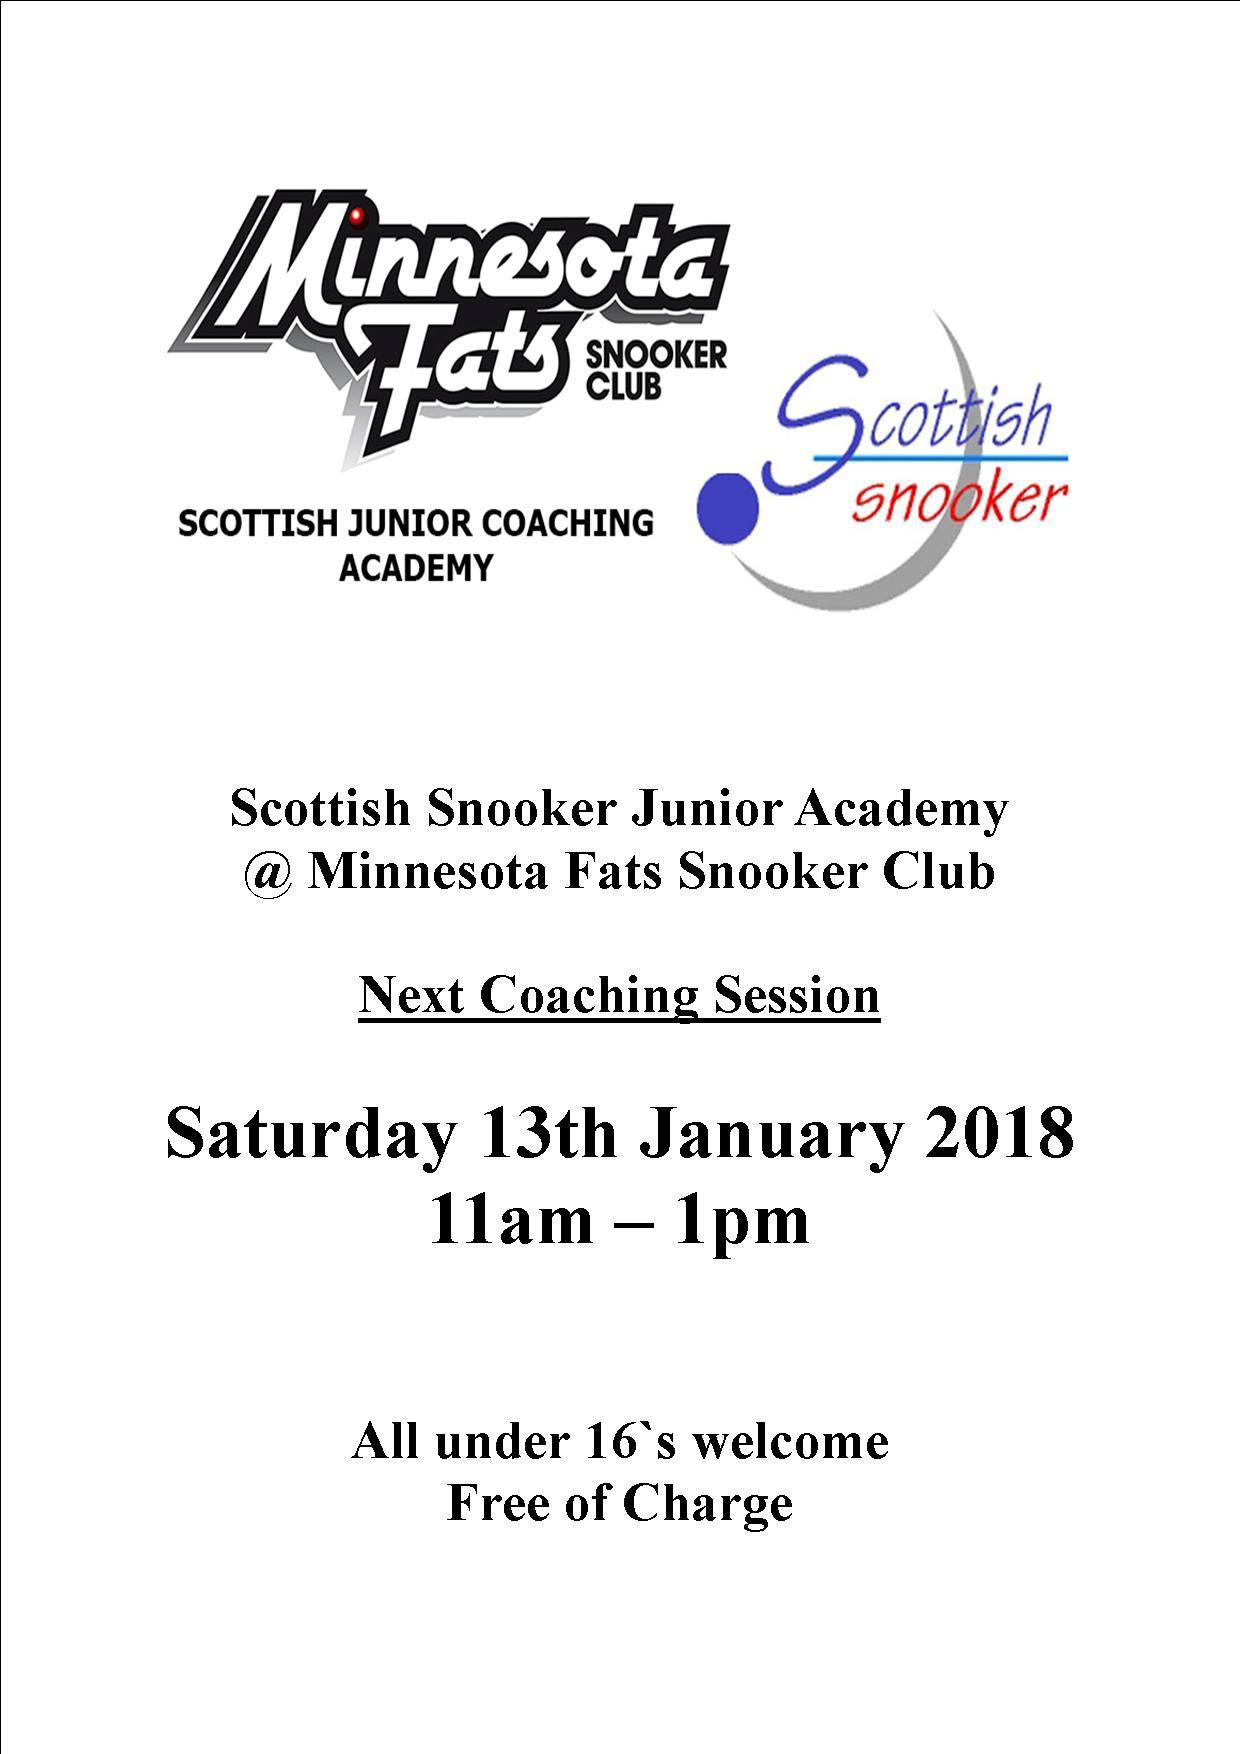 Scottish Snooker Junior Academy - Saturday 13th January 2018 - Minnesota Fats Snooker Club